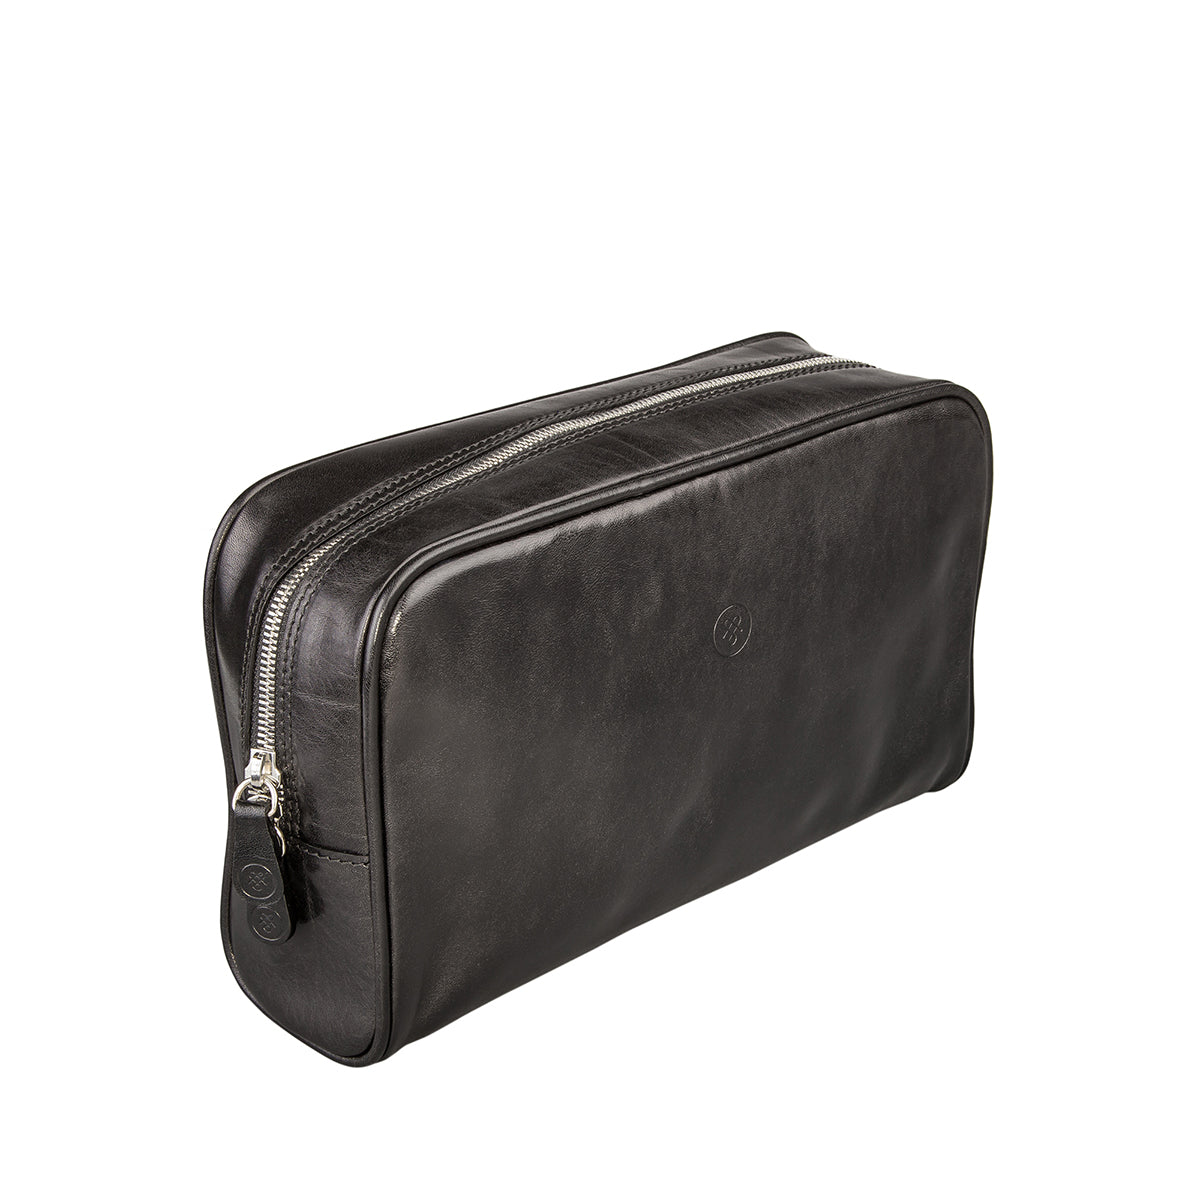 Image 2 of the 'Raffaelle' Black Veg-Tanned Leather Wash Bag